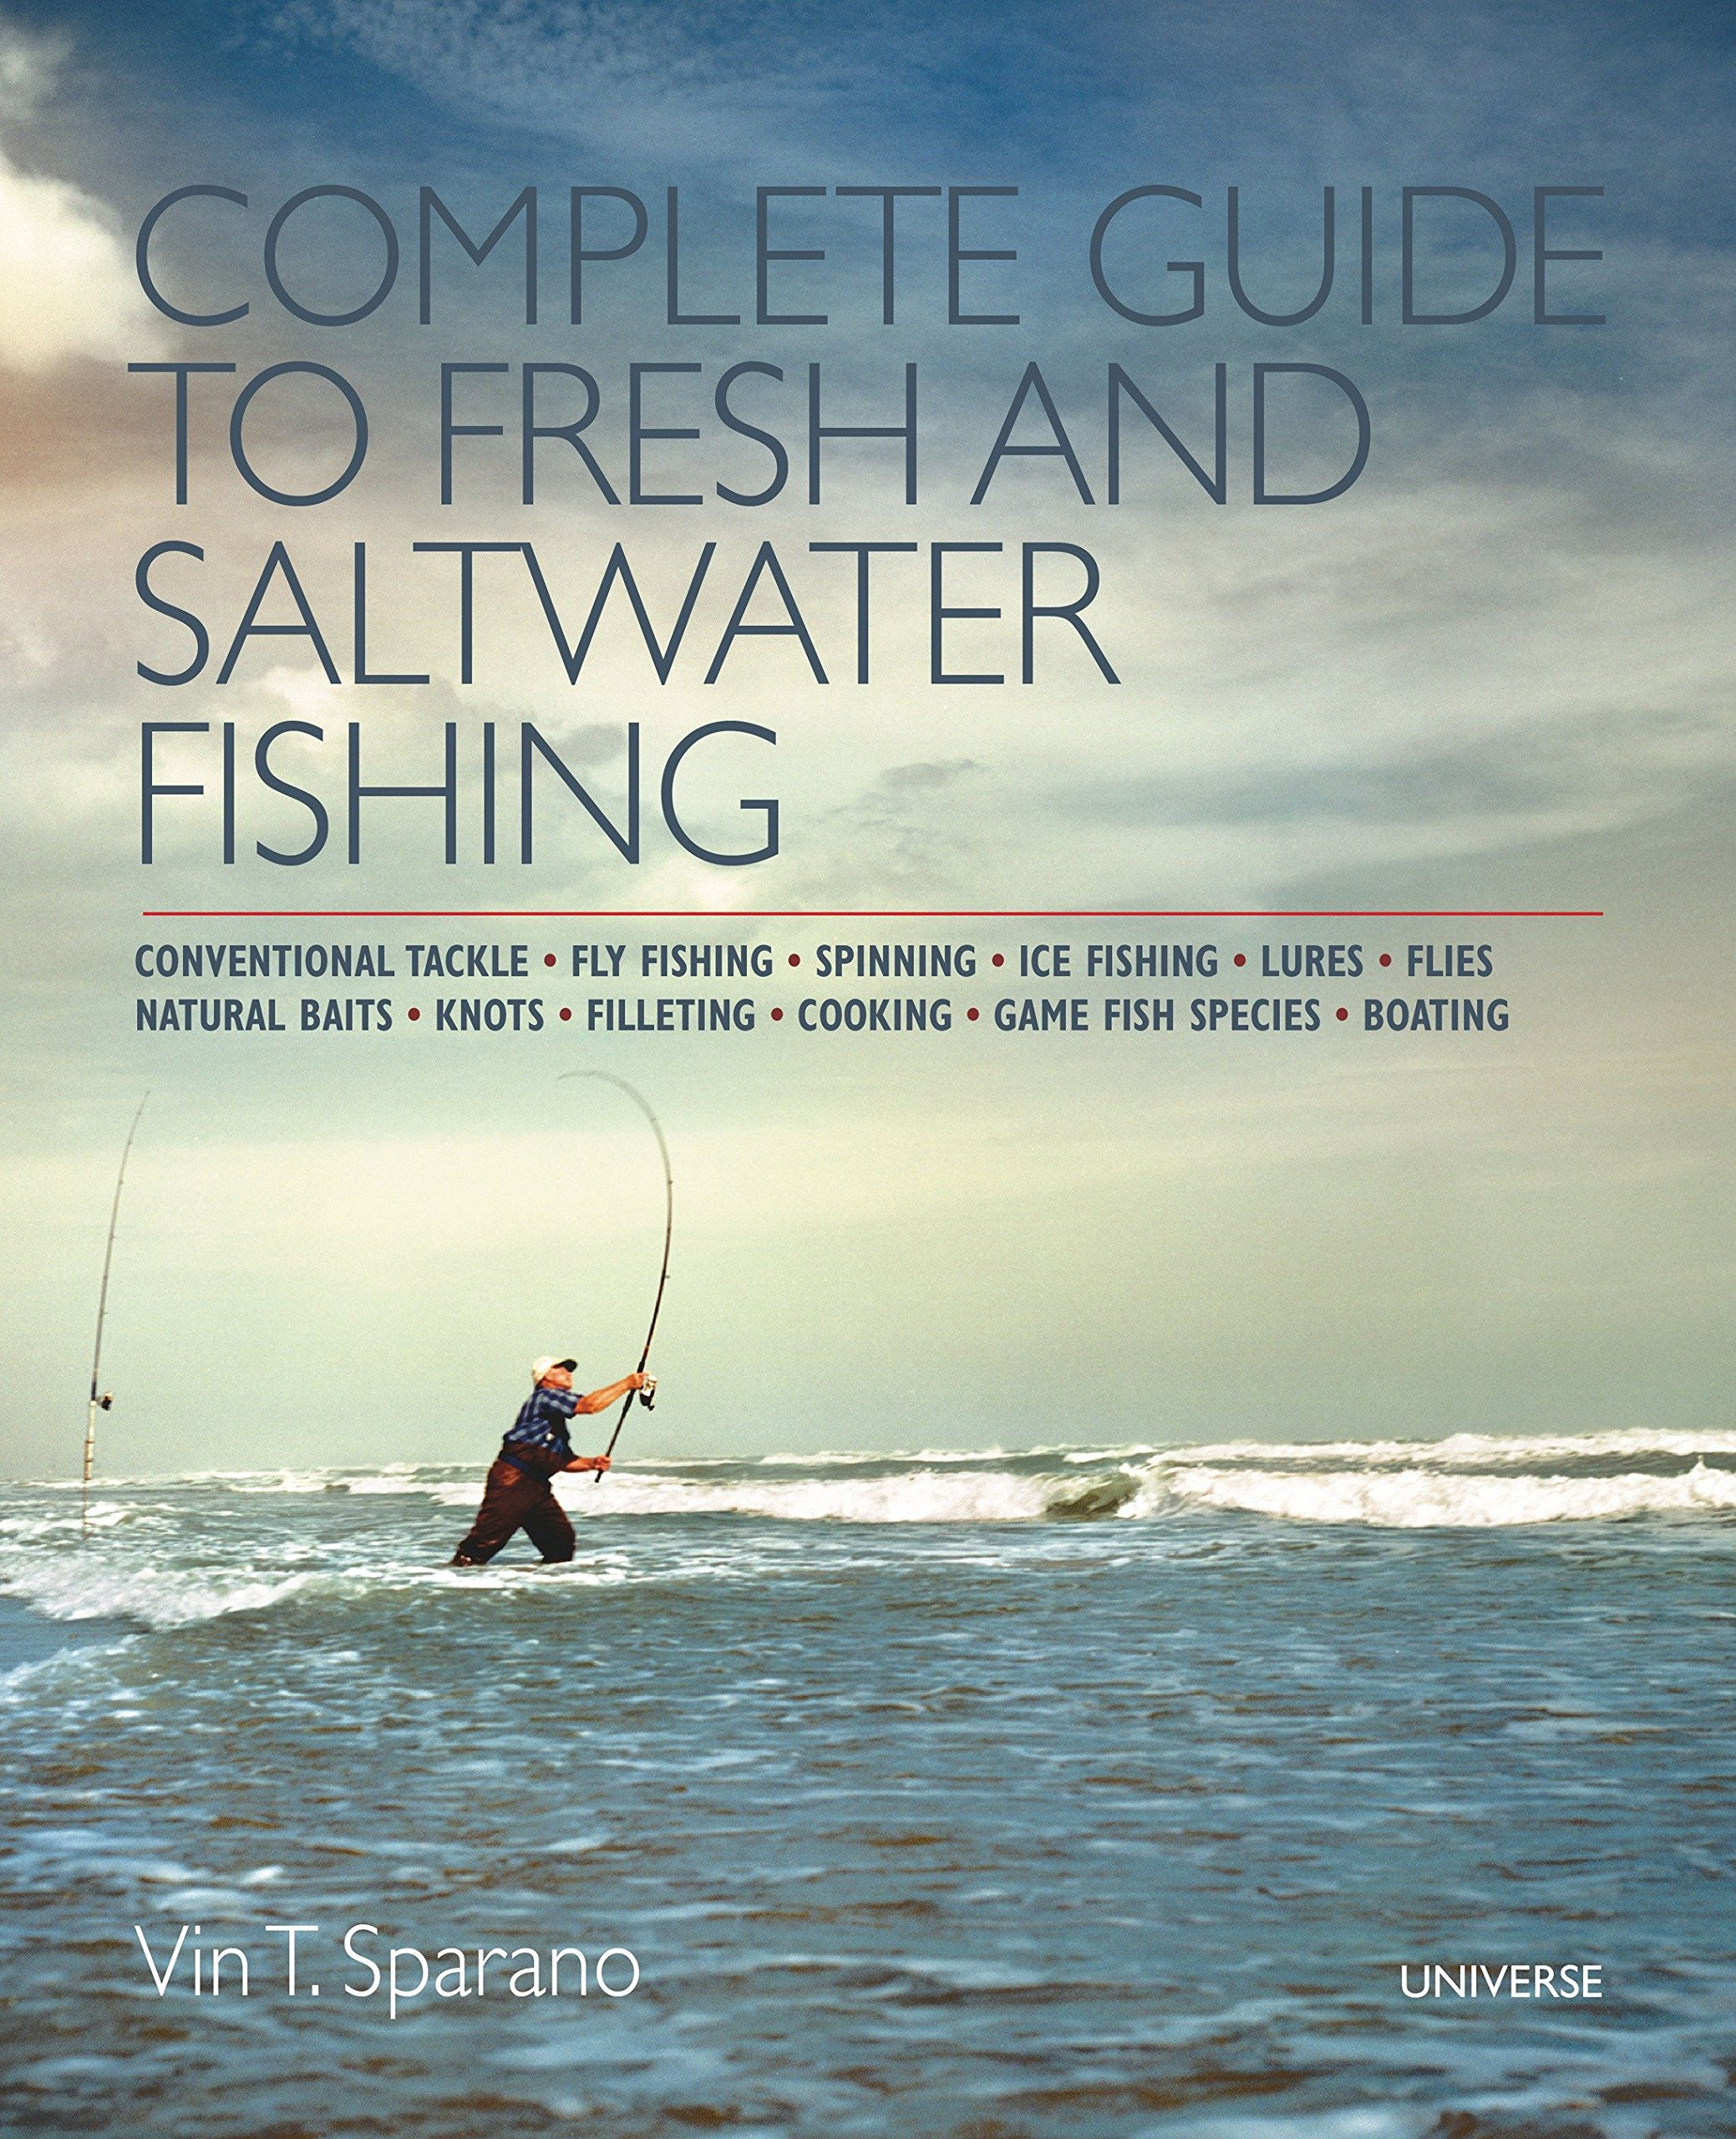 Download Complete Guide to Fresh and Saltwater Fishing: Conventional Tackle. Fly Fishing. Spinning. Ice Fishing. Lures. Flies. Natural Baits. Knots. Filleting. Cooking. Game Fish Species. Boating ebook